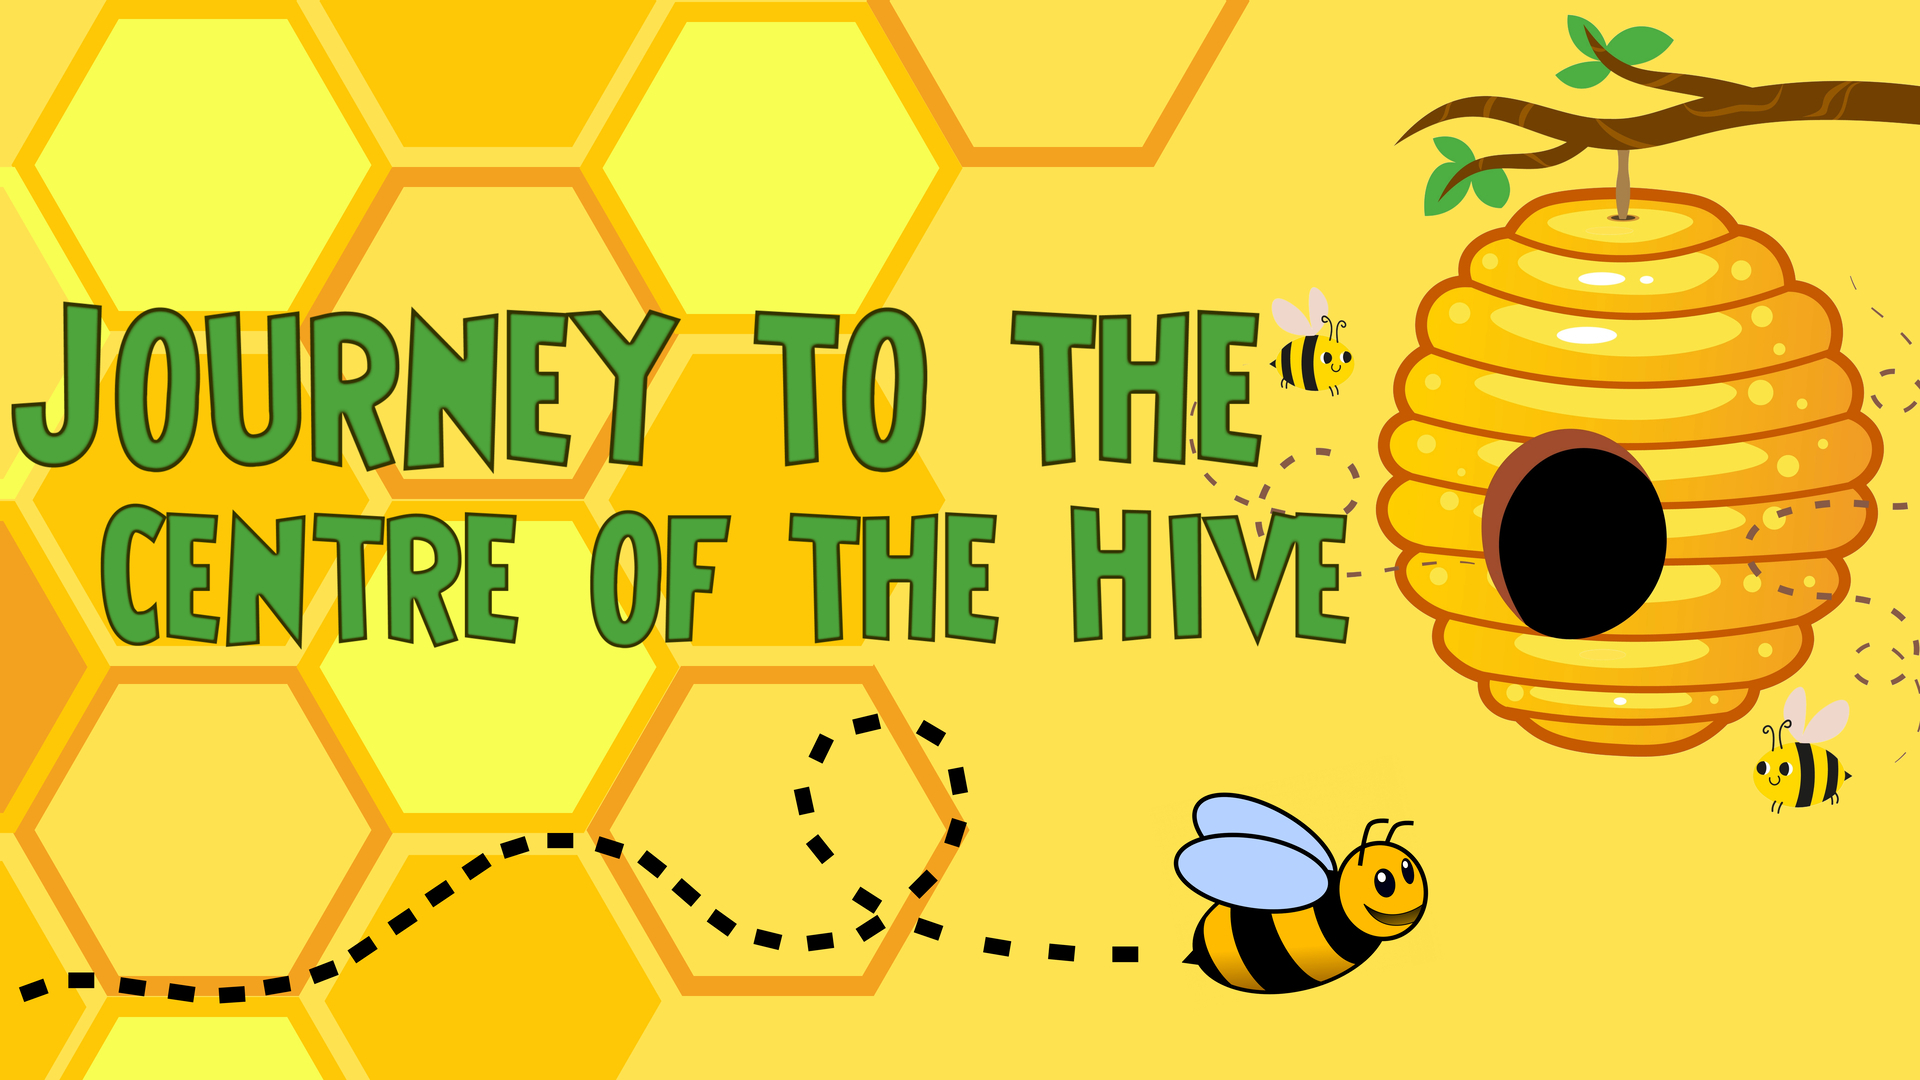 Hive Maize Poster